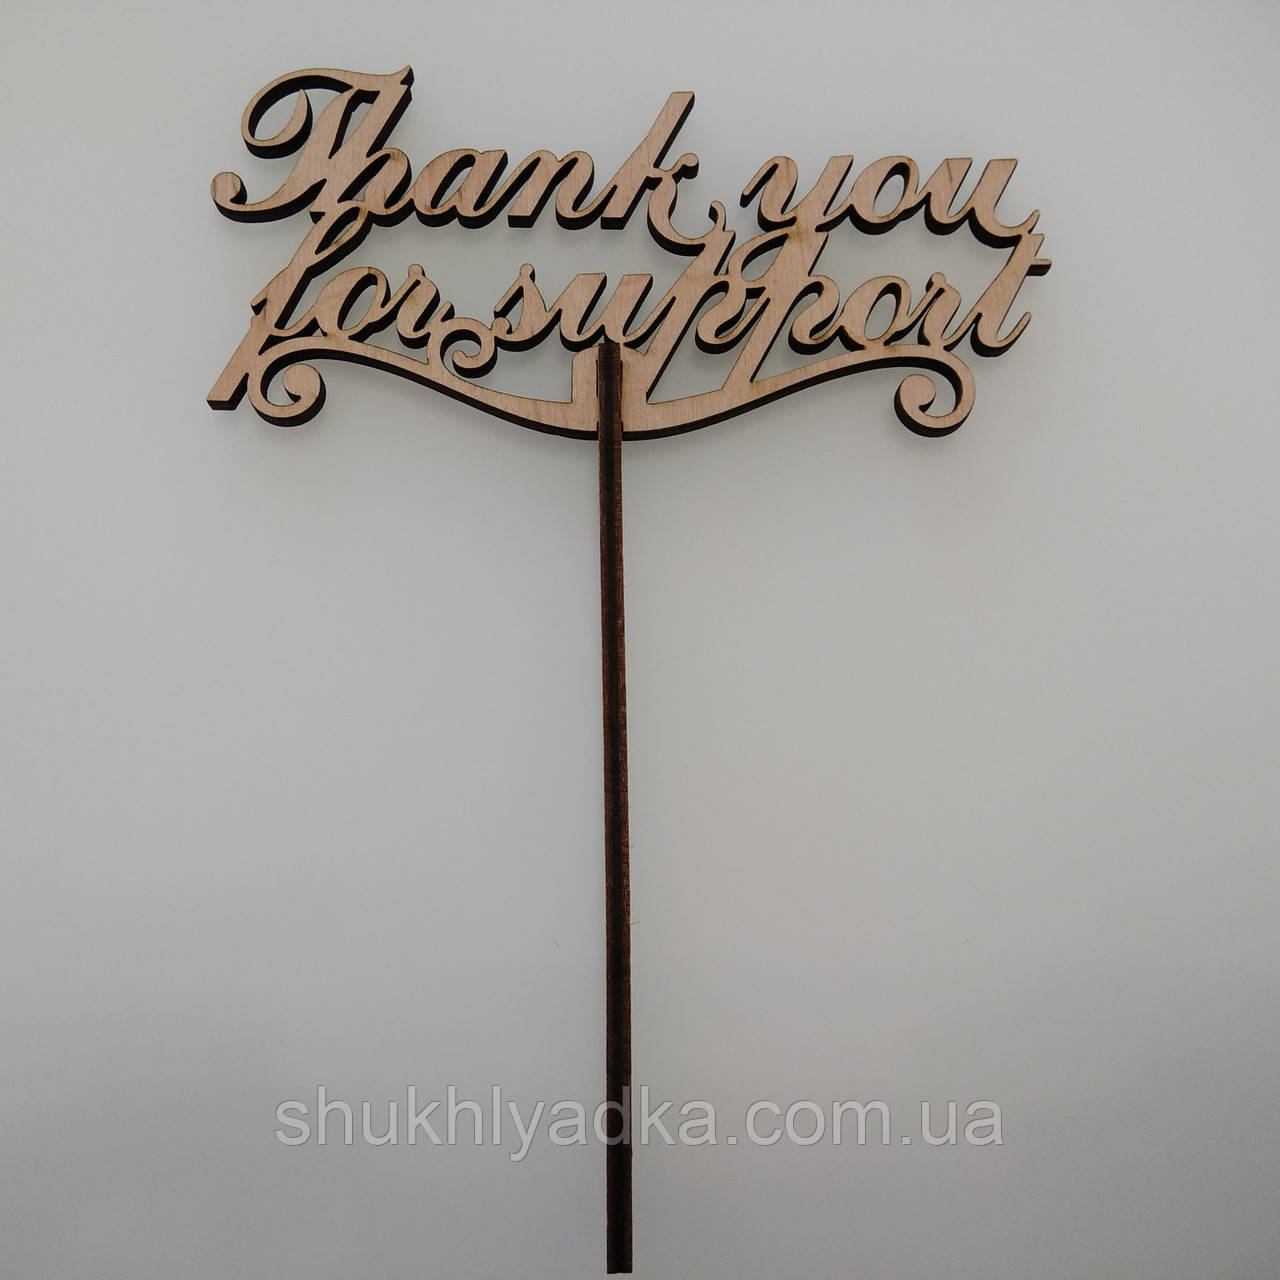 Thank you for support